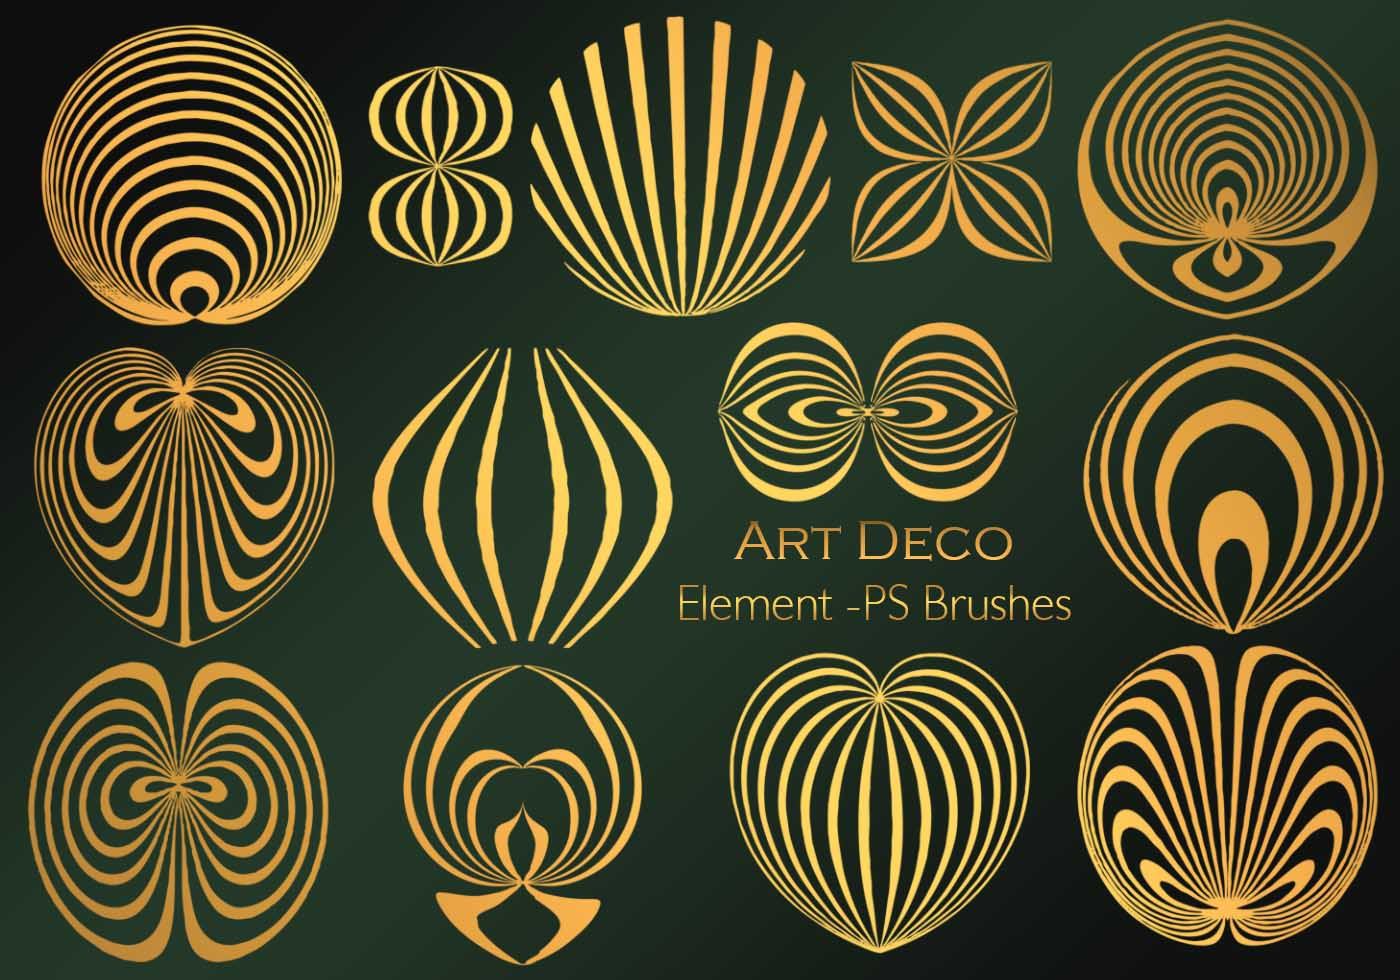 20 art deco element ps vol 5 free photoshop brushes at brusheezy - Deco vol ...